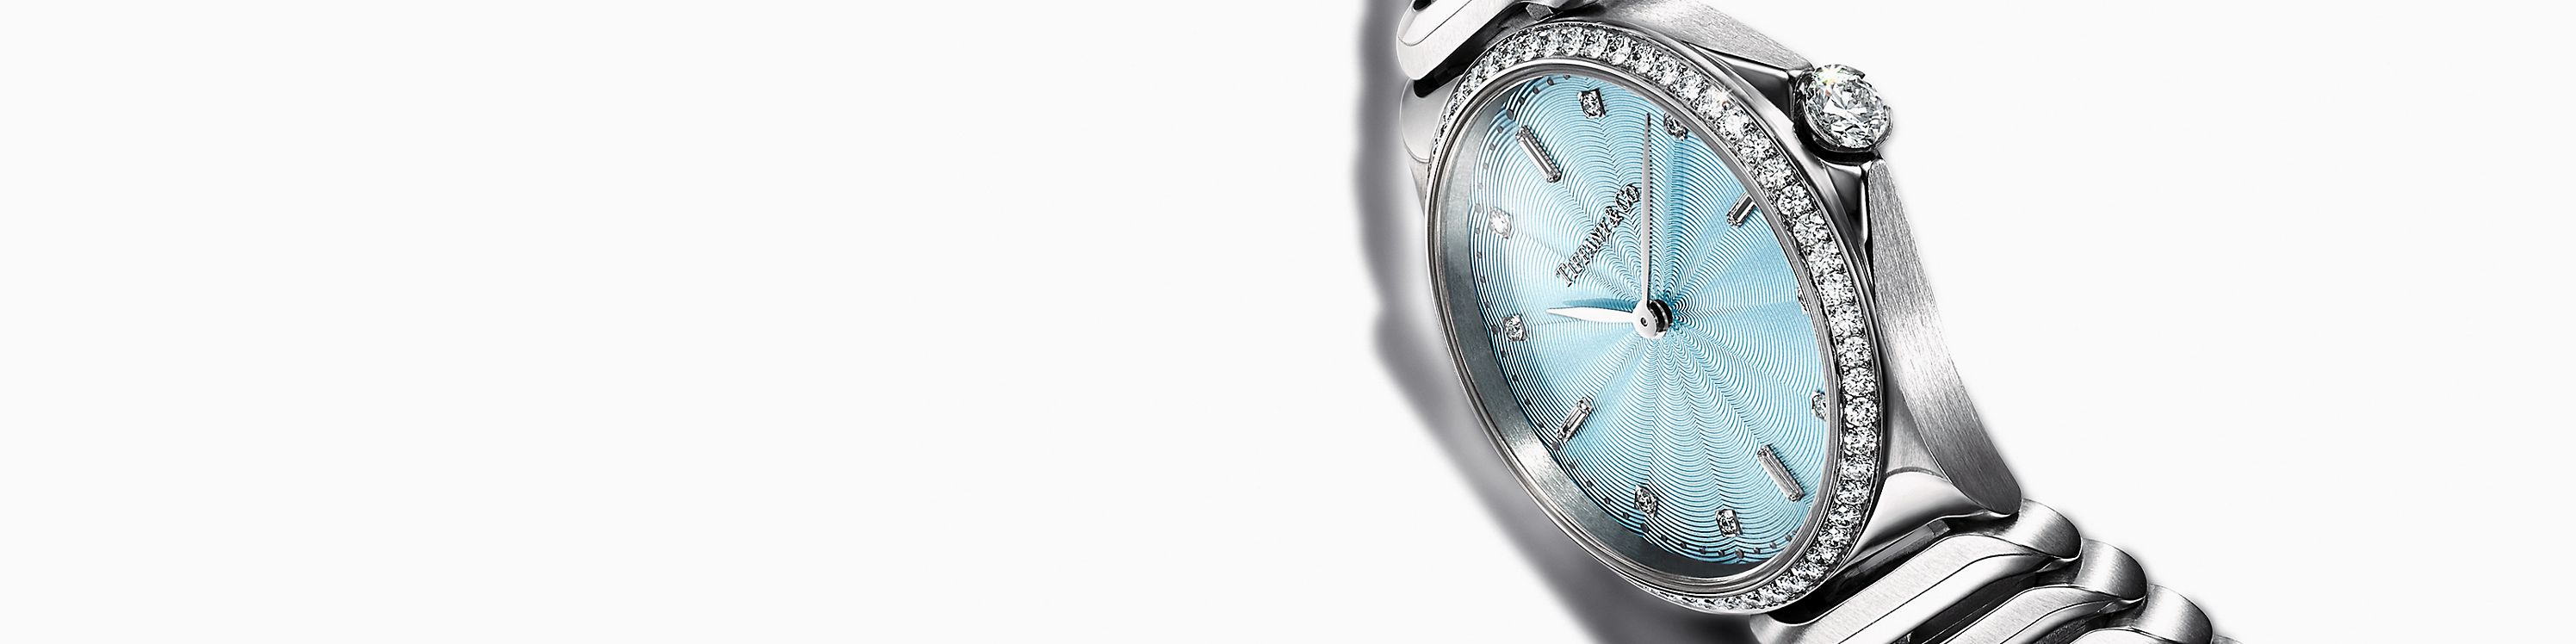 Shop Tiffany & Co. Tiffany Metro Watches